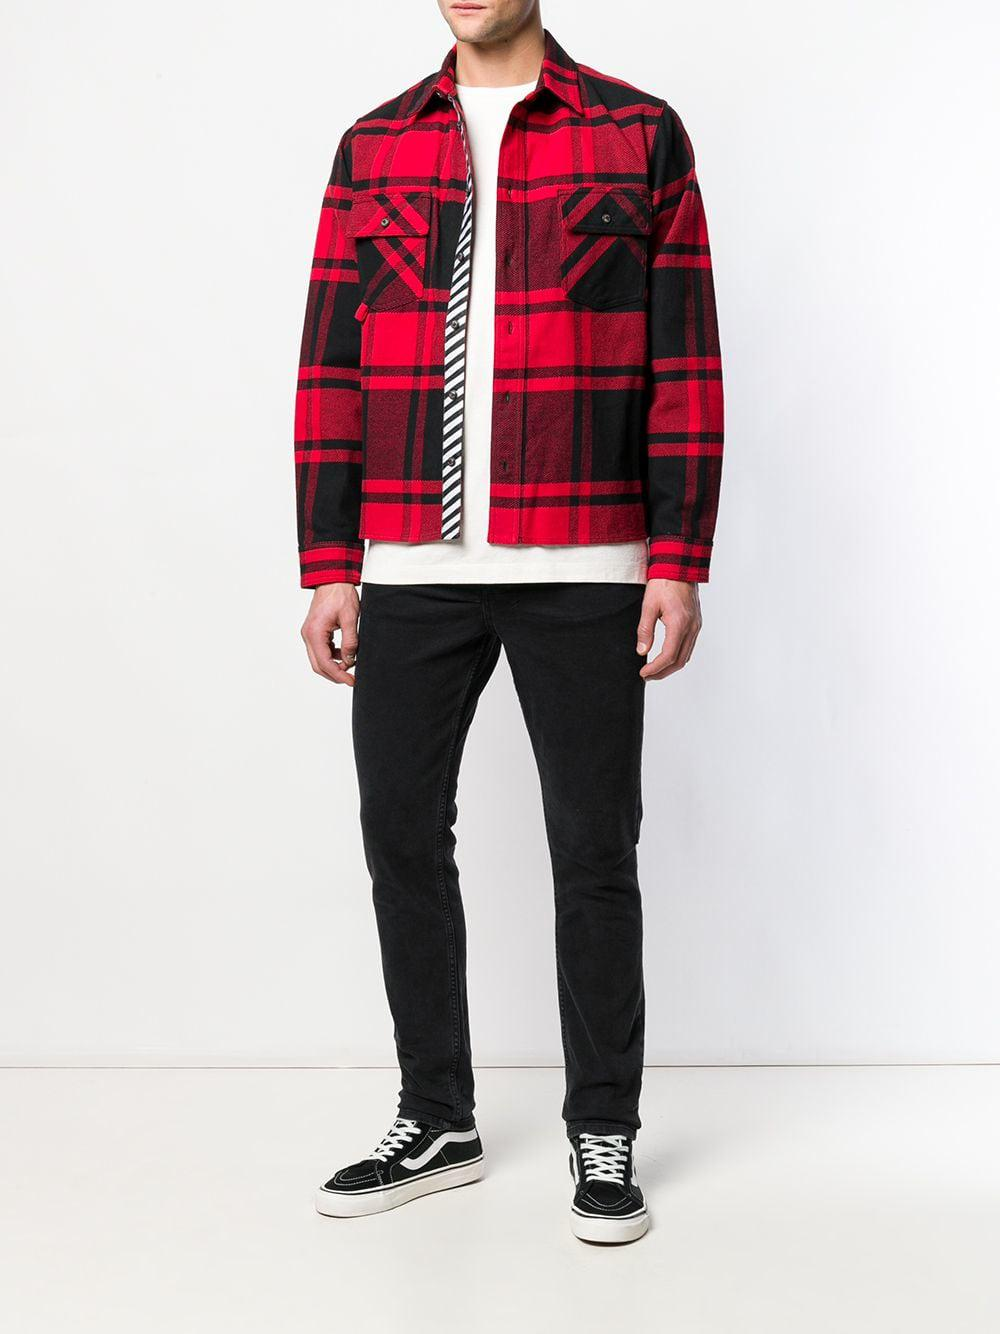 255b7210966 Lyst - Off-White c o Virgil Abloh Stencil Diagonals Checked Flannel Shirt  in Red for Men - Save 13%